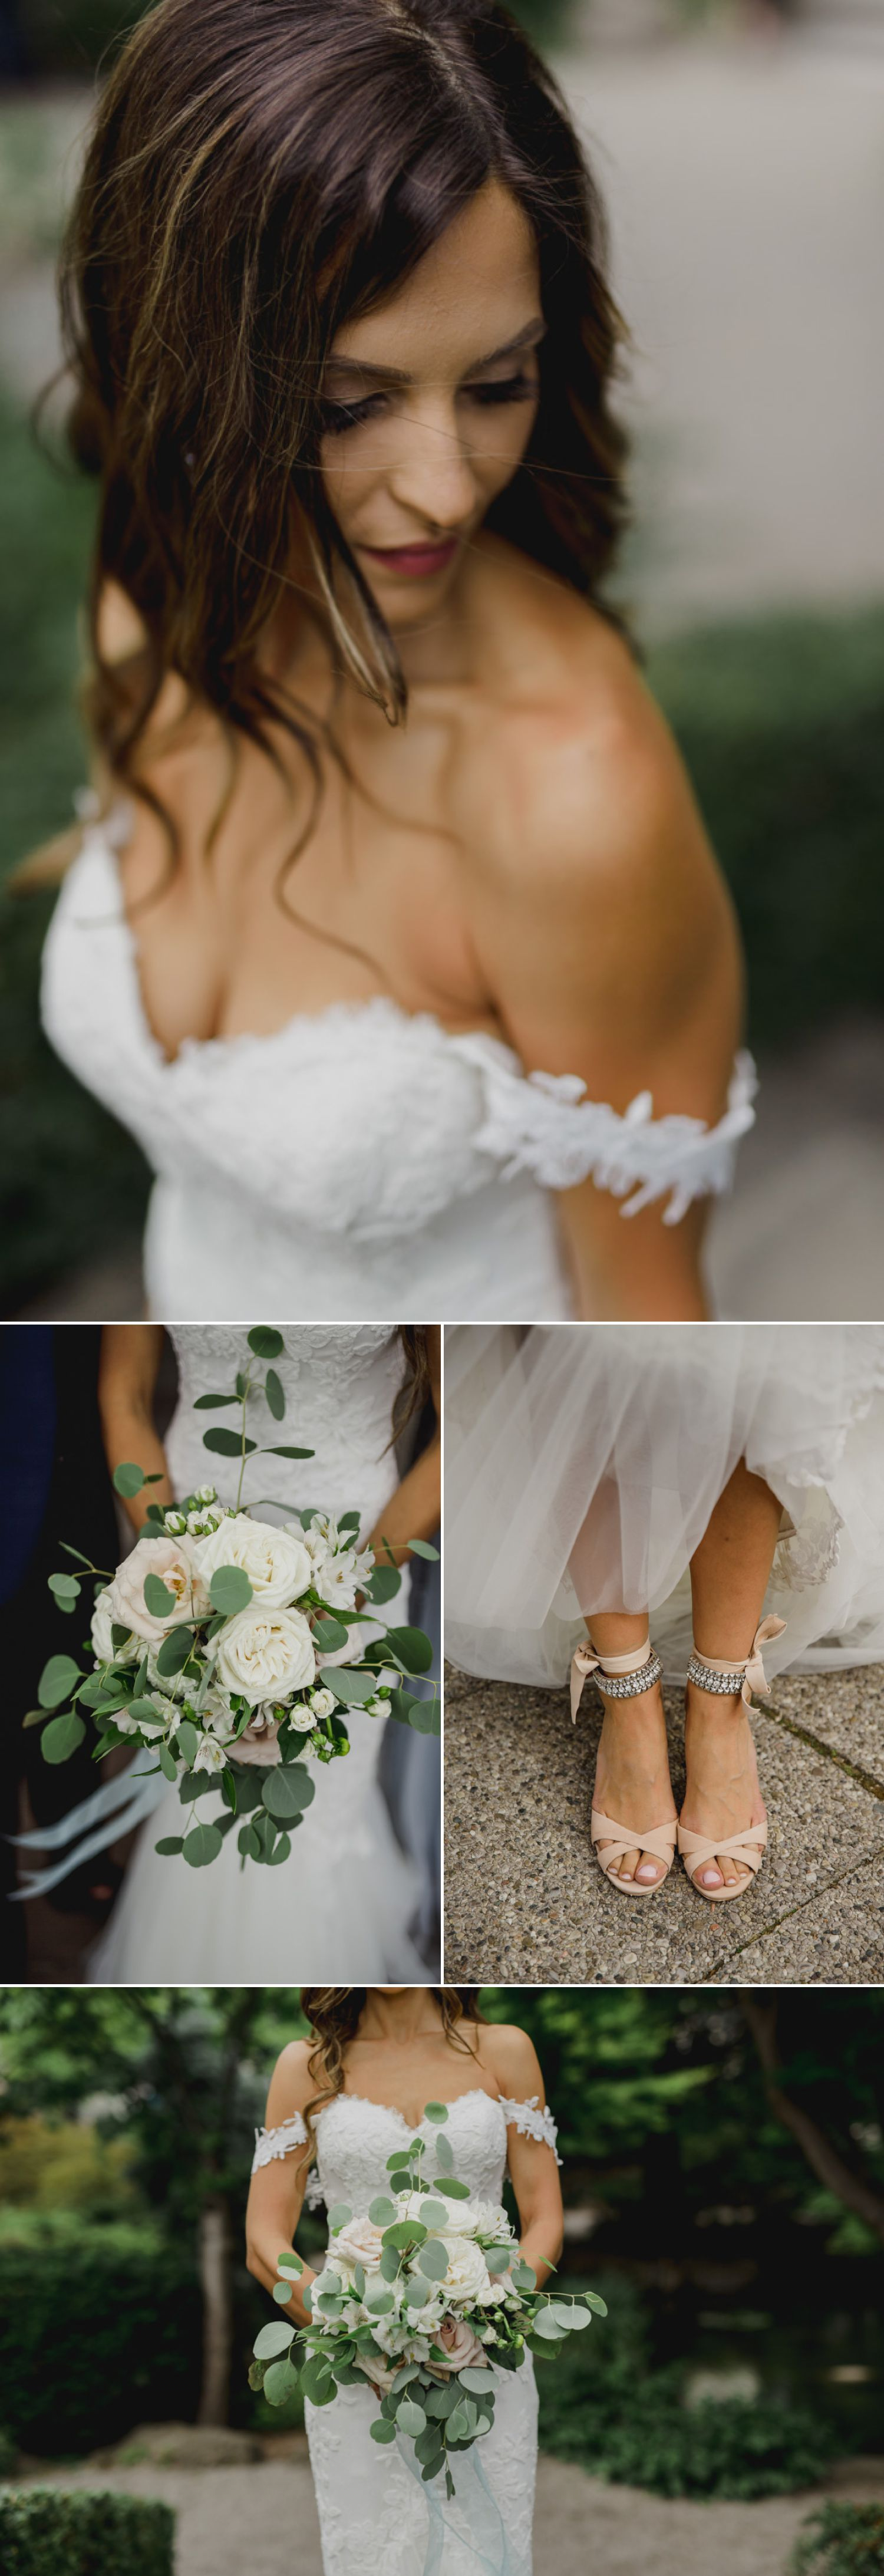 Portraits of the bride showcasing her dress and other details